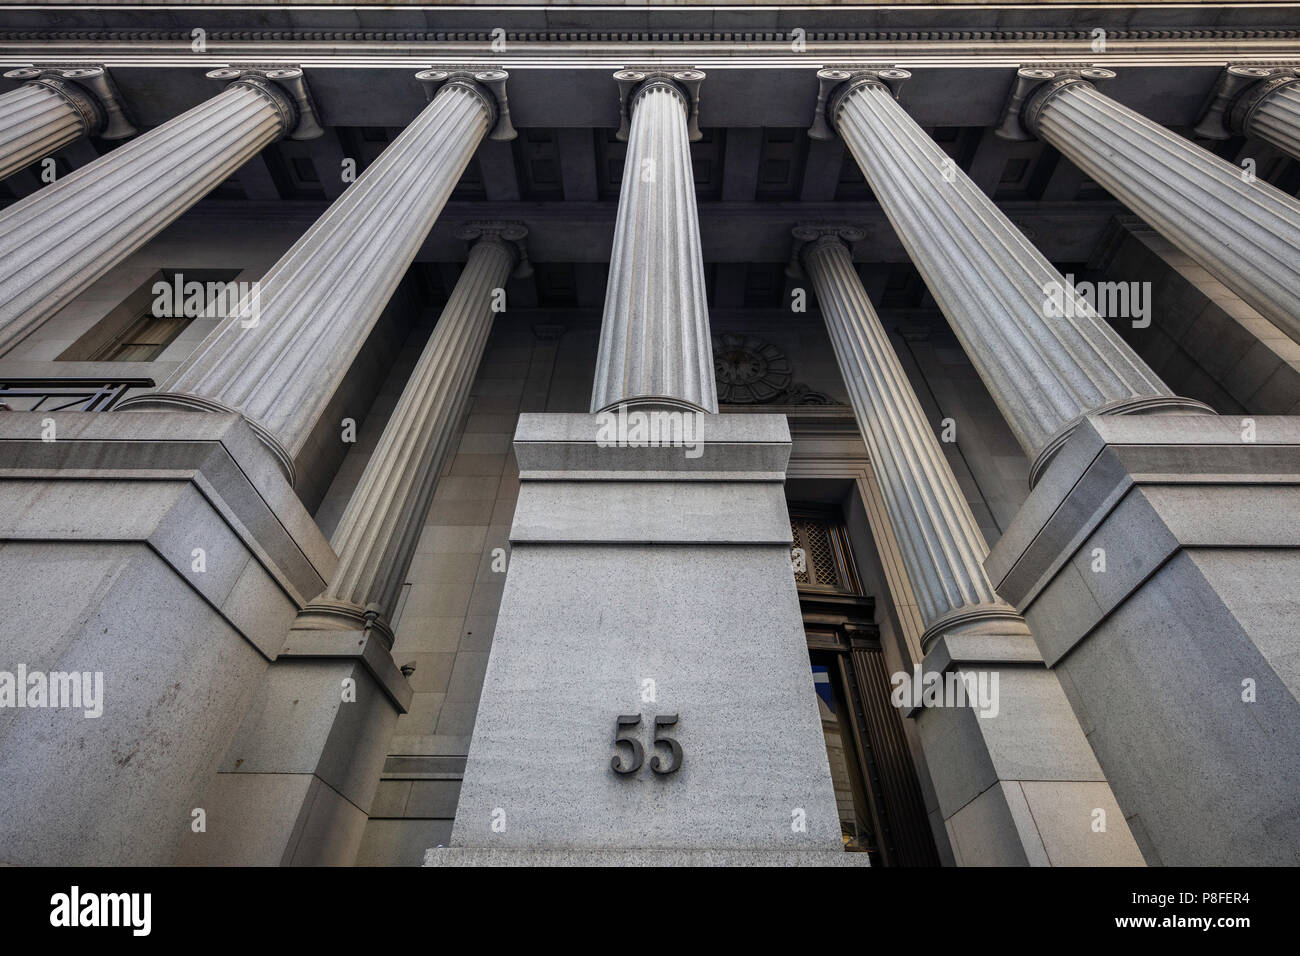 National City Bank Building, 55 Wall Street, New York City - Stock Image